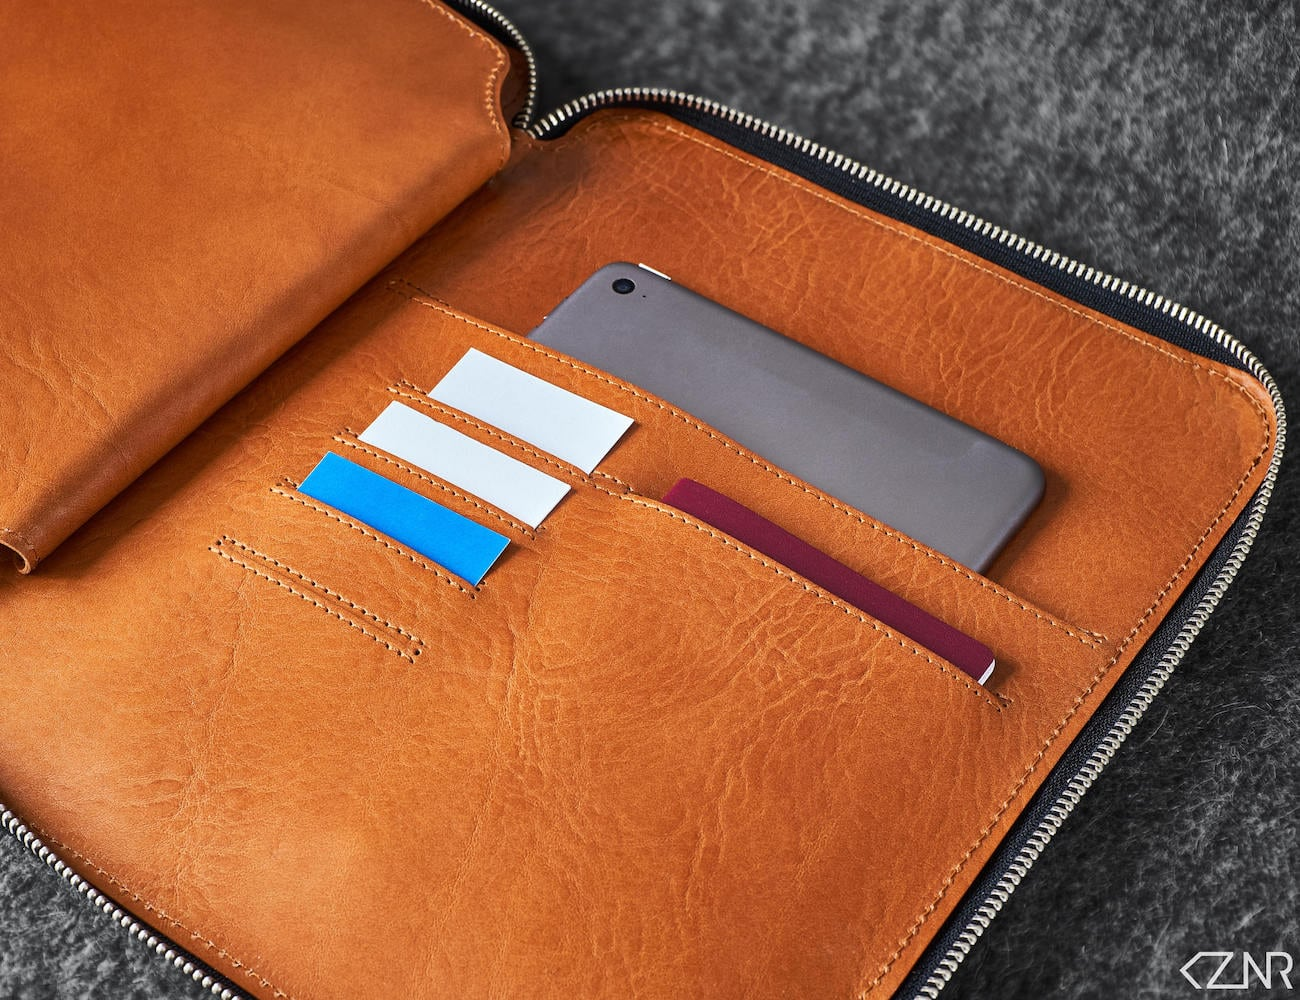 KZNR Minimalist Leather iPad Folio protects your iPad and more